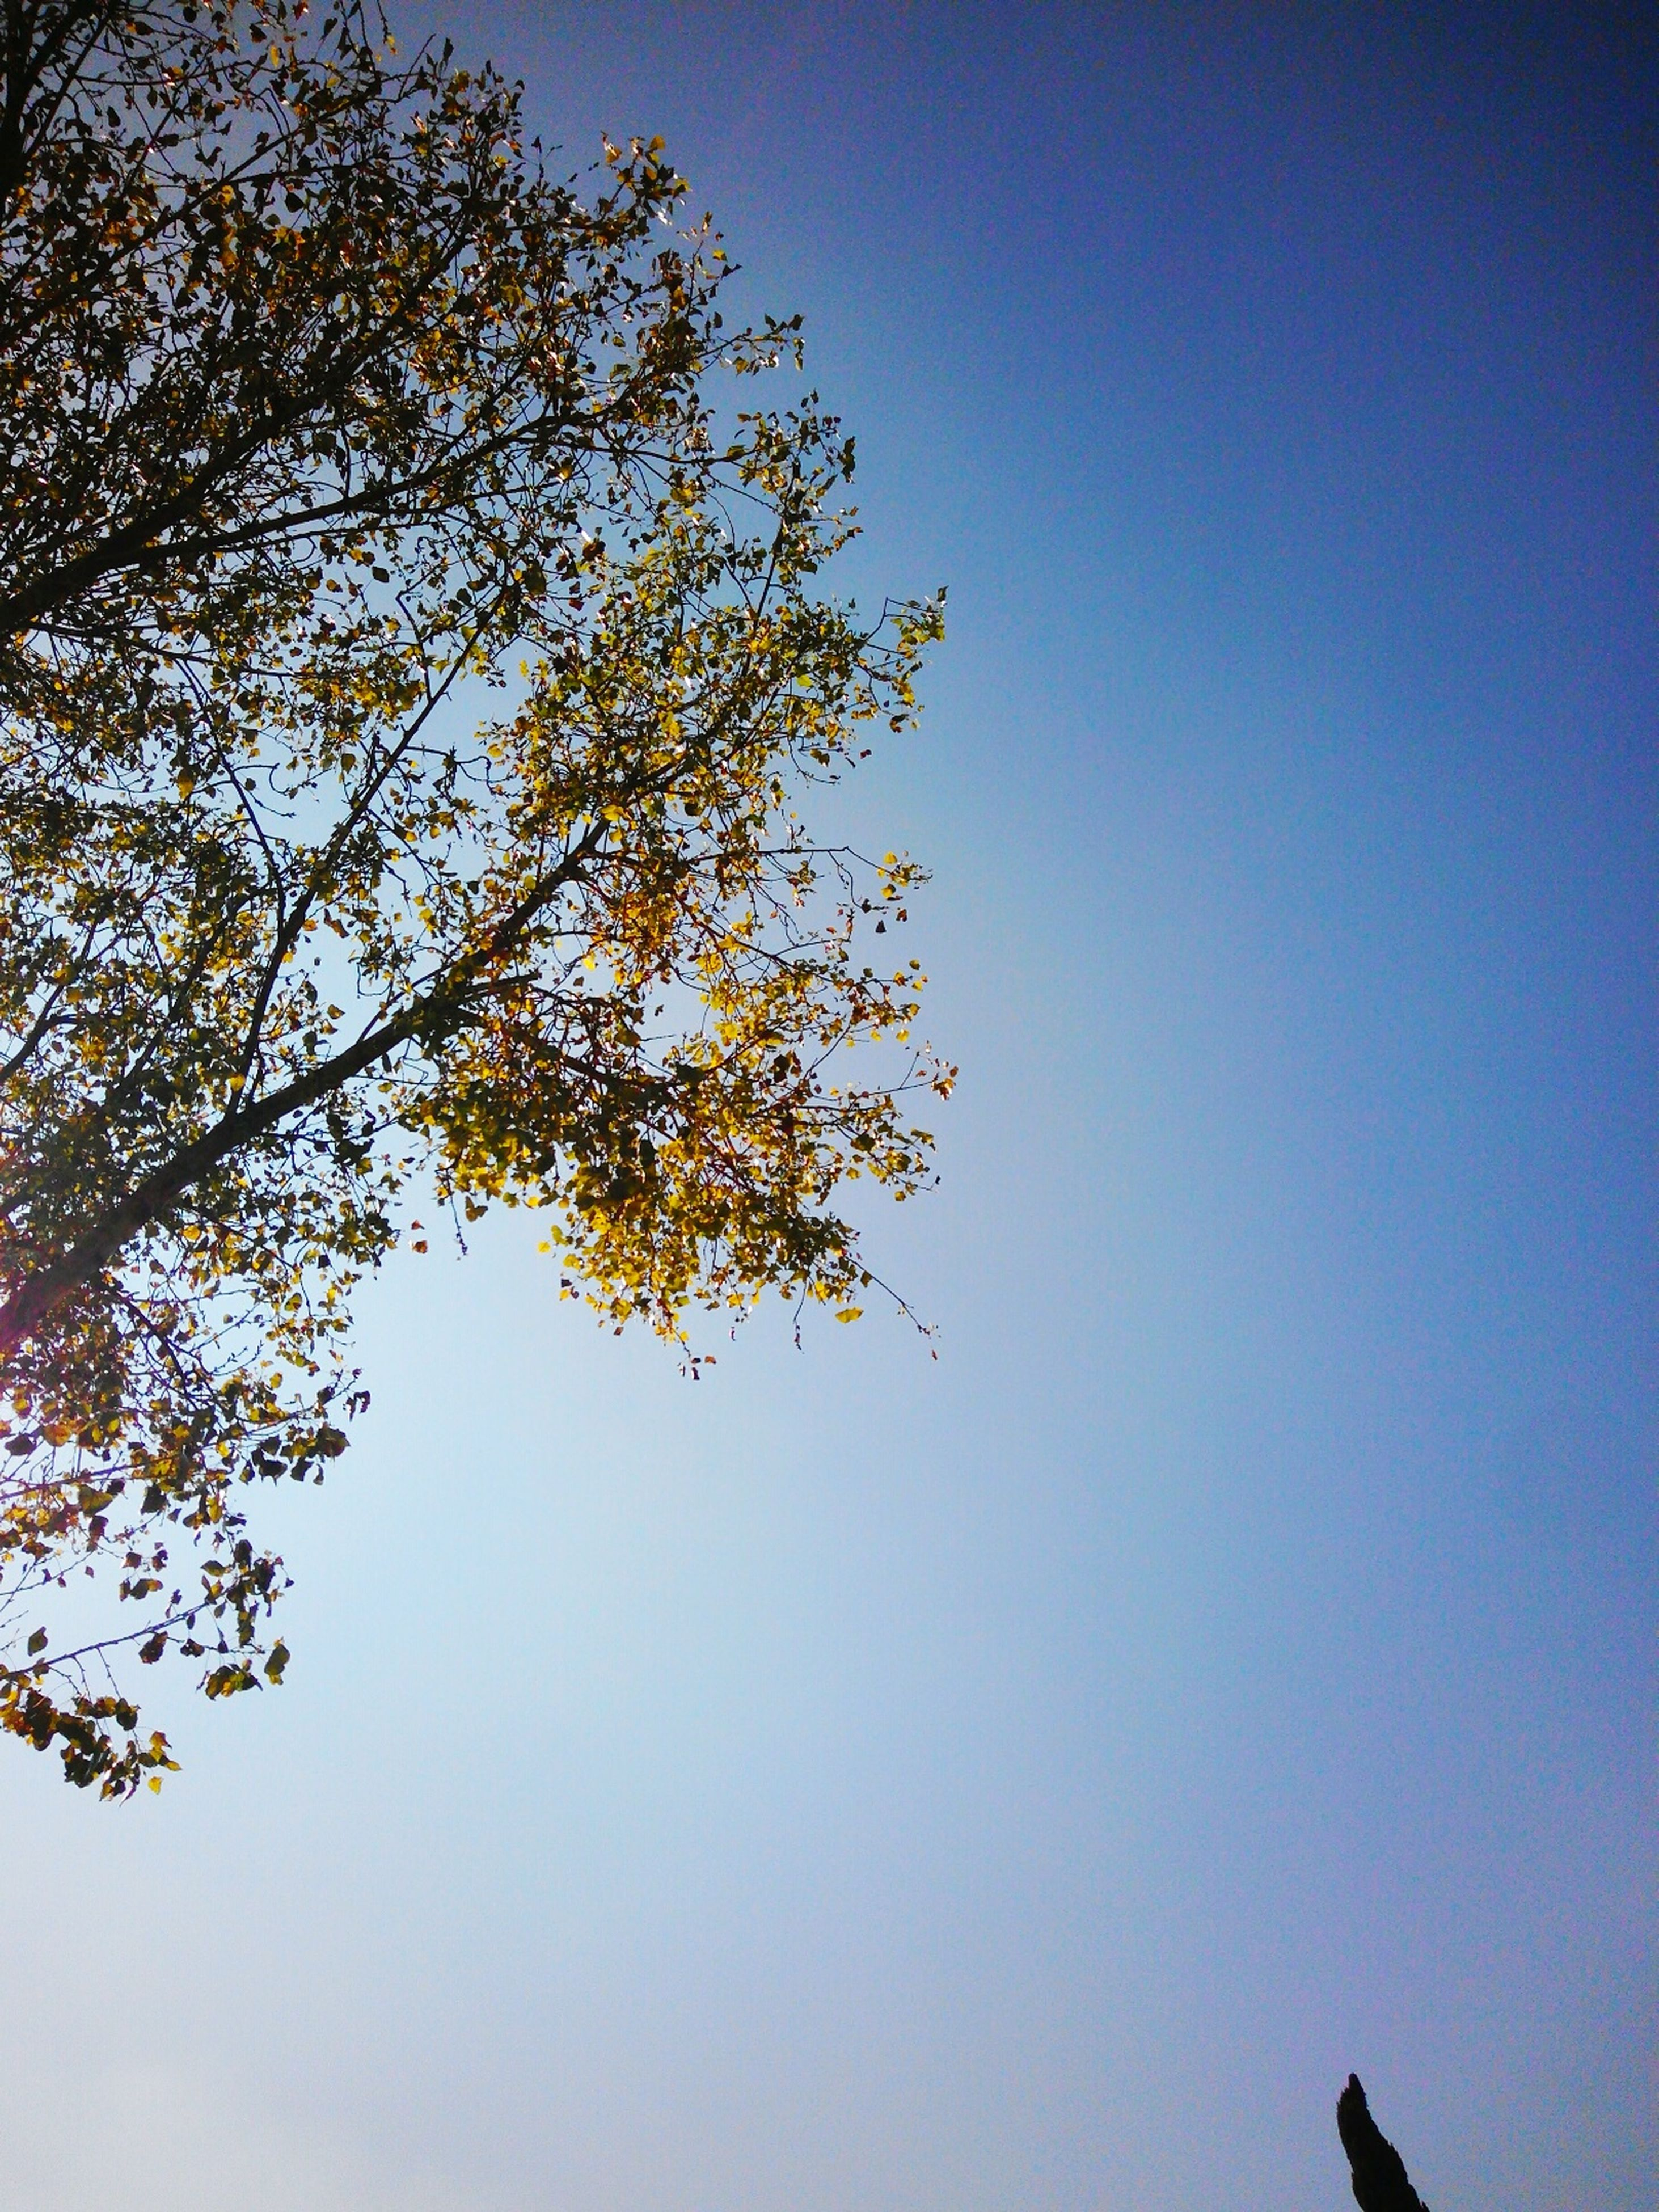 tree, low angle view, growth, nature, clear sky, no people, beauty in nature, sky, day, outdoors, branch, close-up